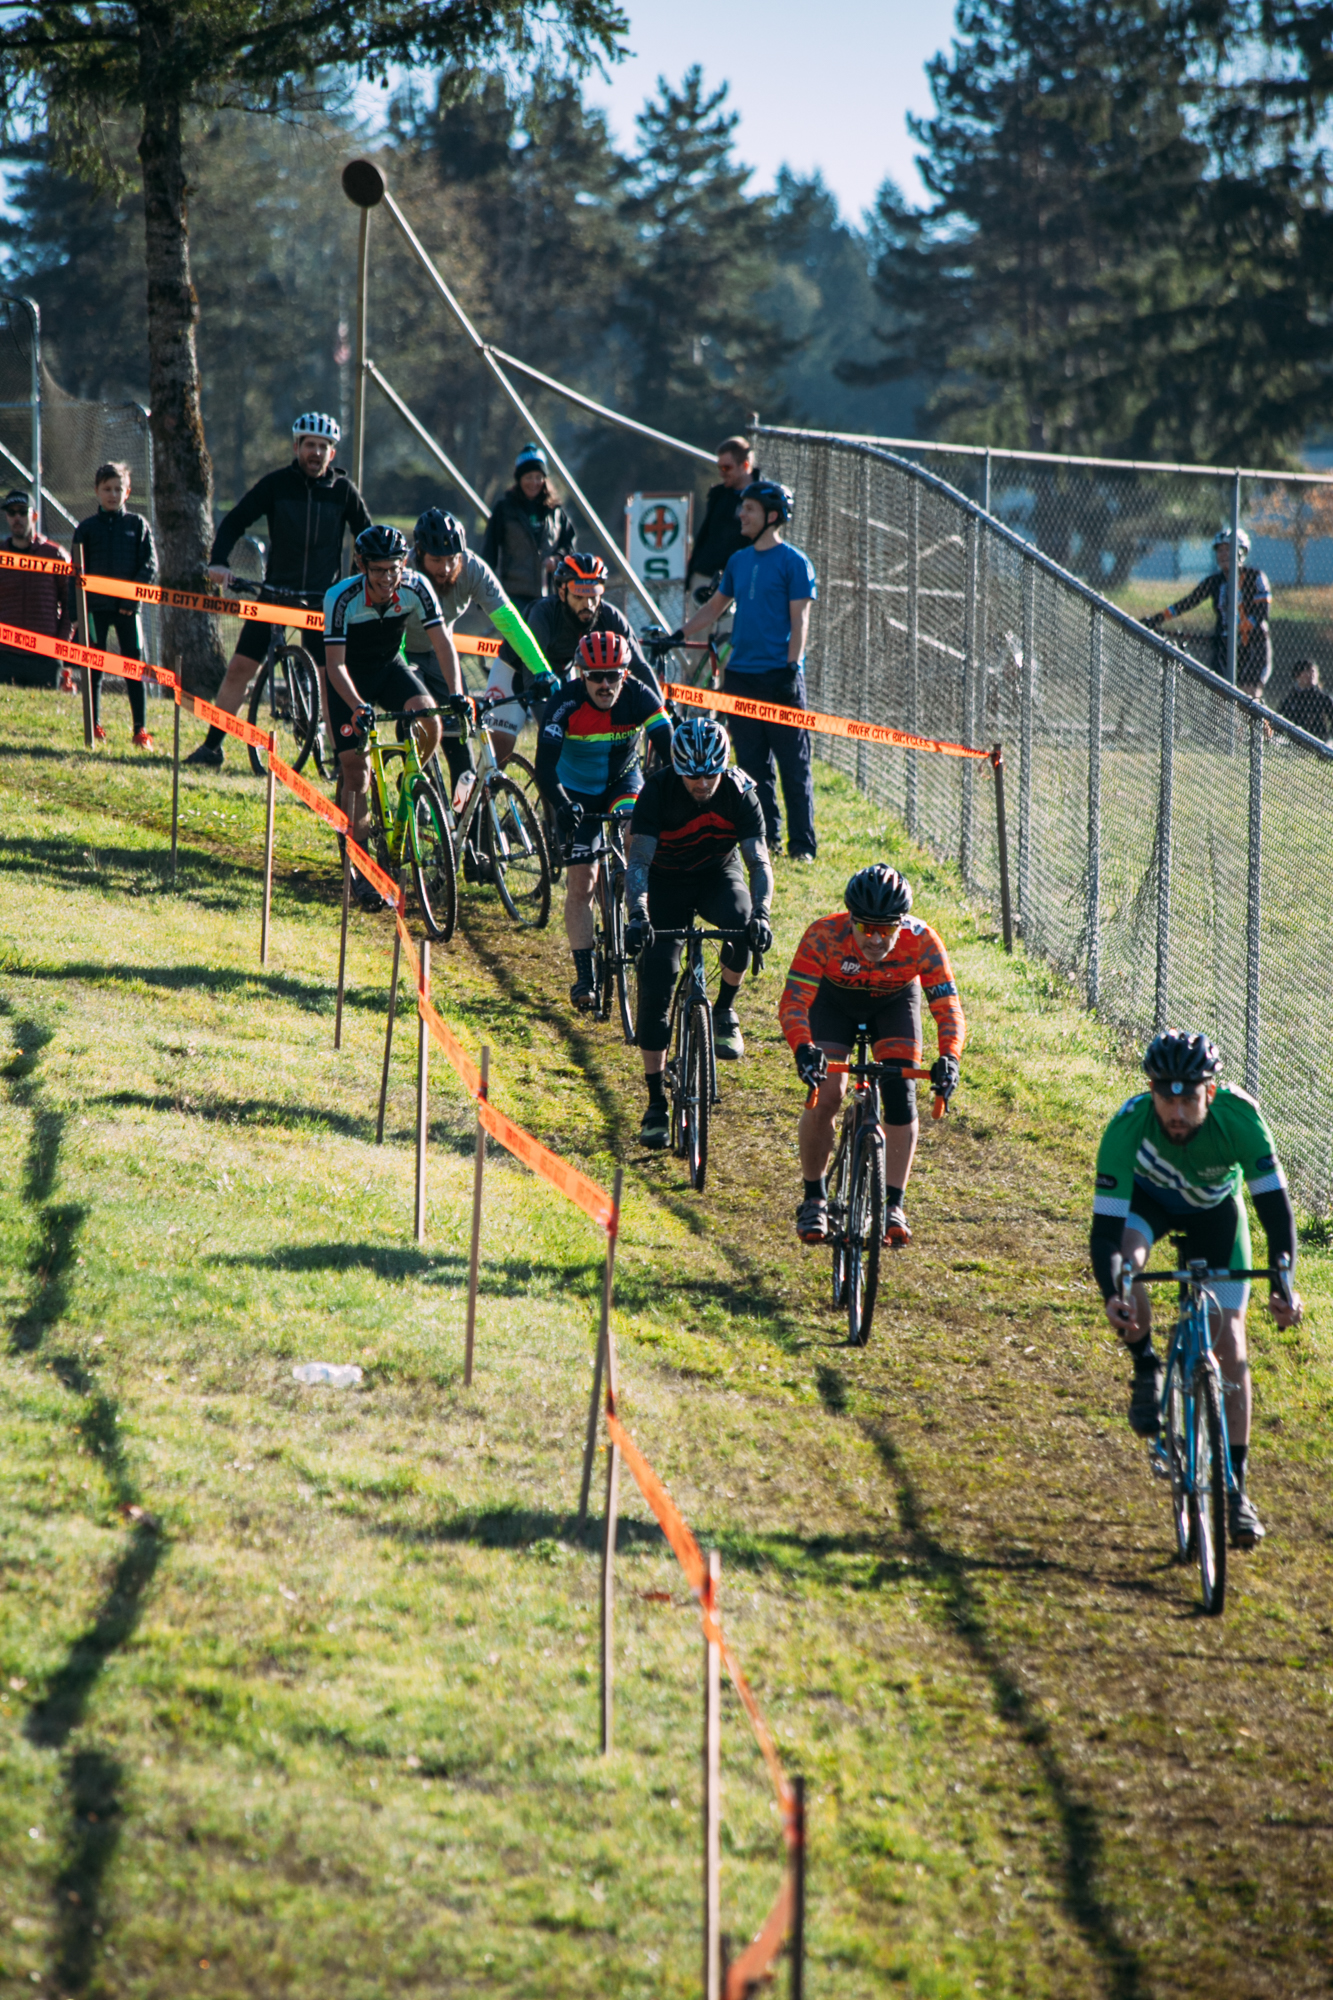 Cyclocross18_CCCX_RainierHS-7-mettlecycling.jpg